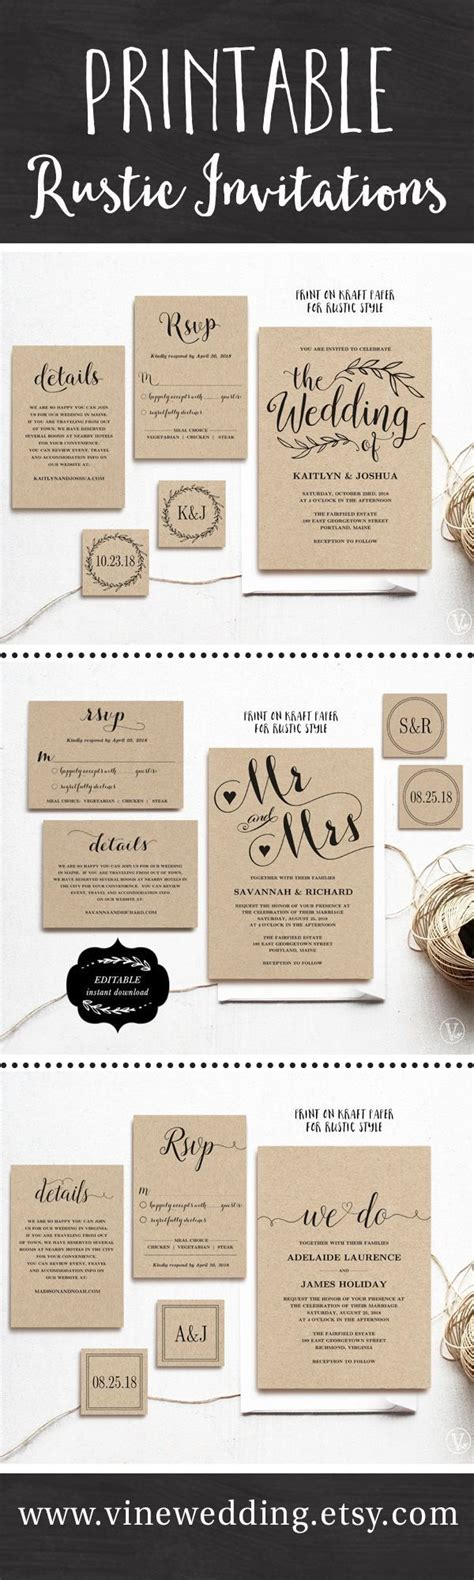 Wedding Invitations Budget by Stunning Wedding Invitations On A Budget Pictures